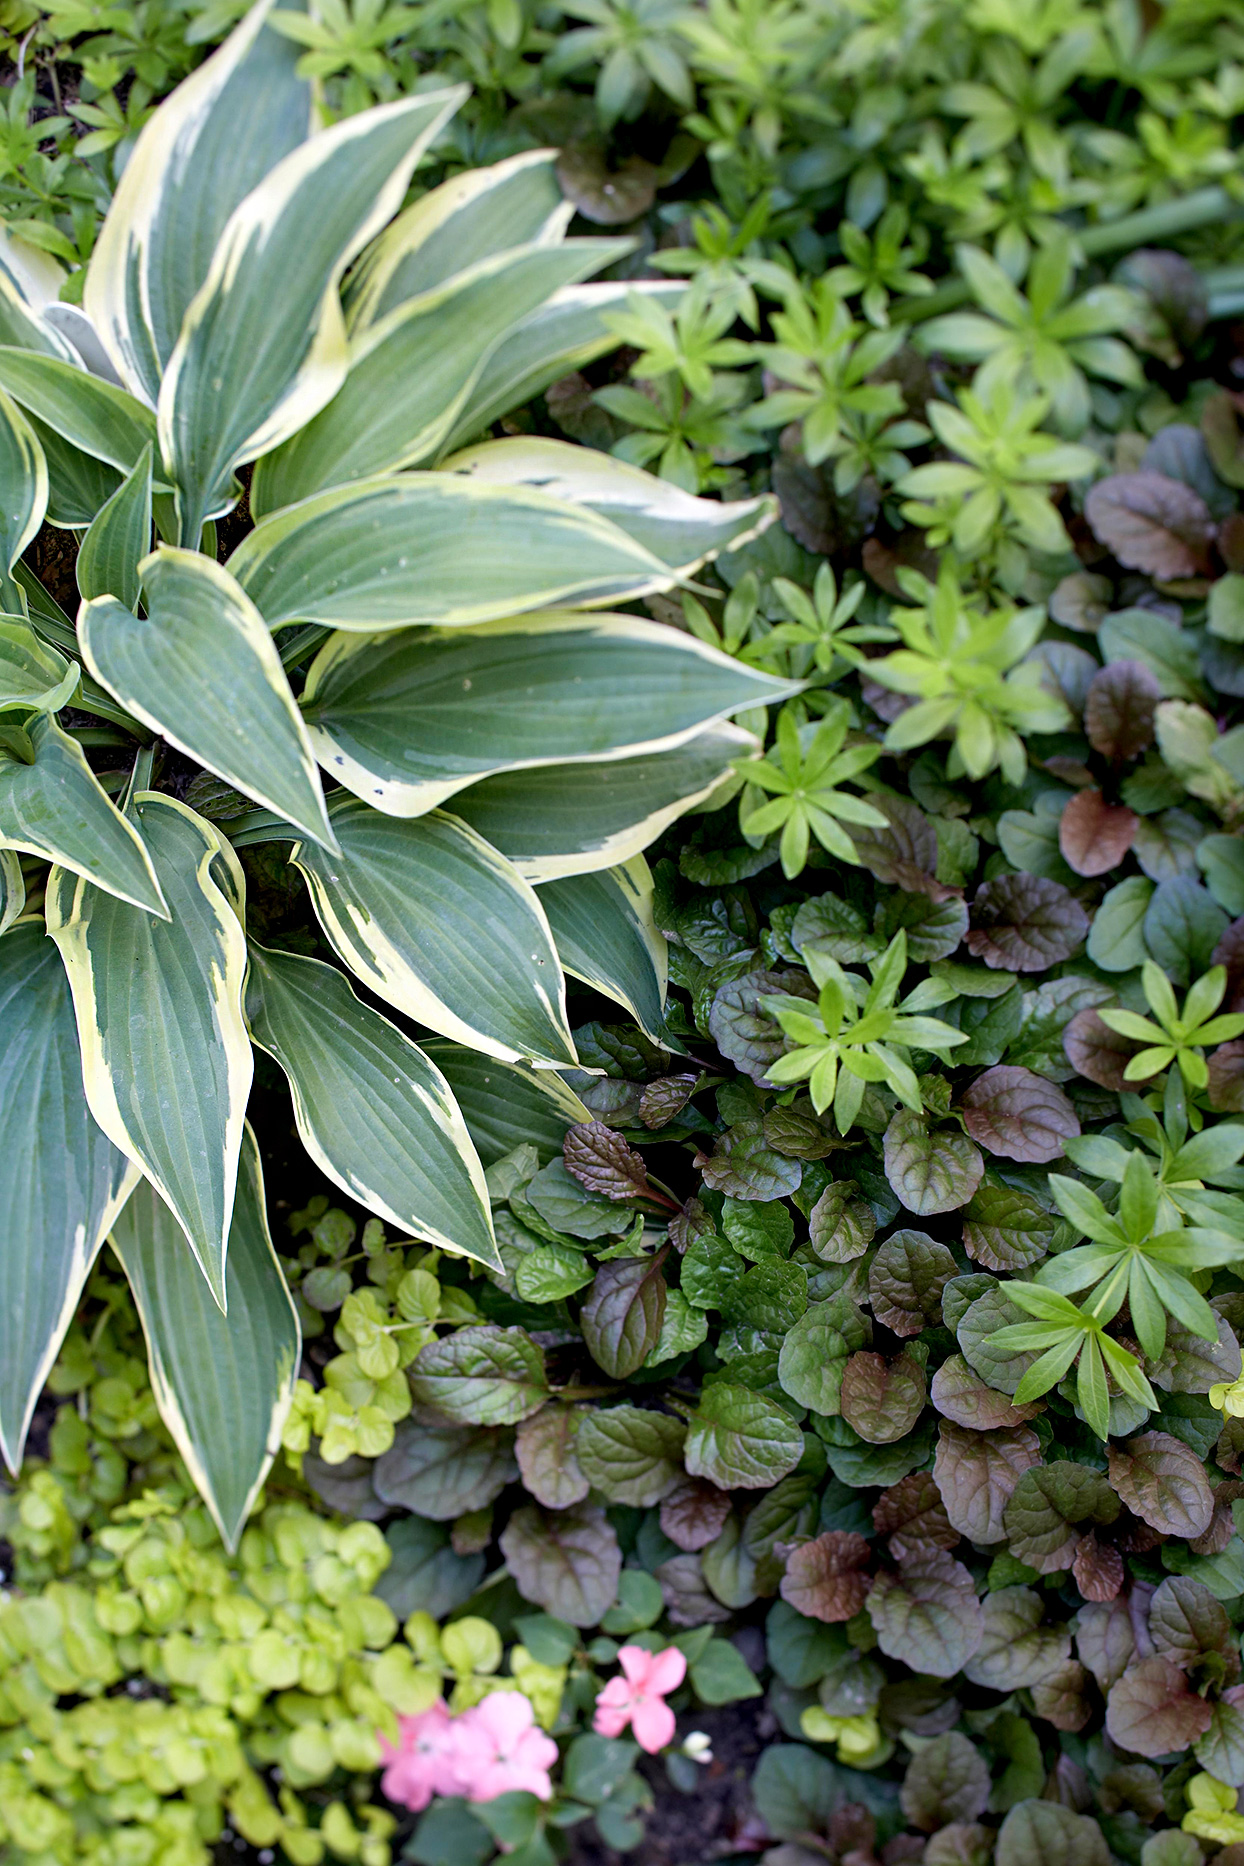 Wolverine Hosta with green leaves and white edges